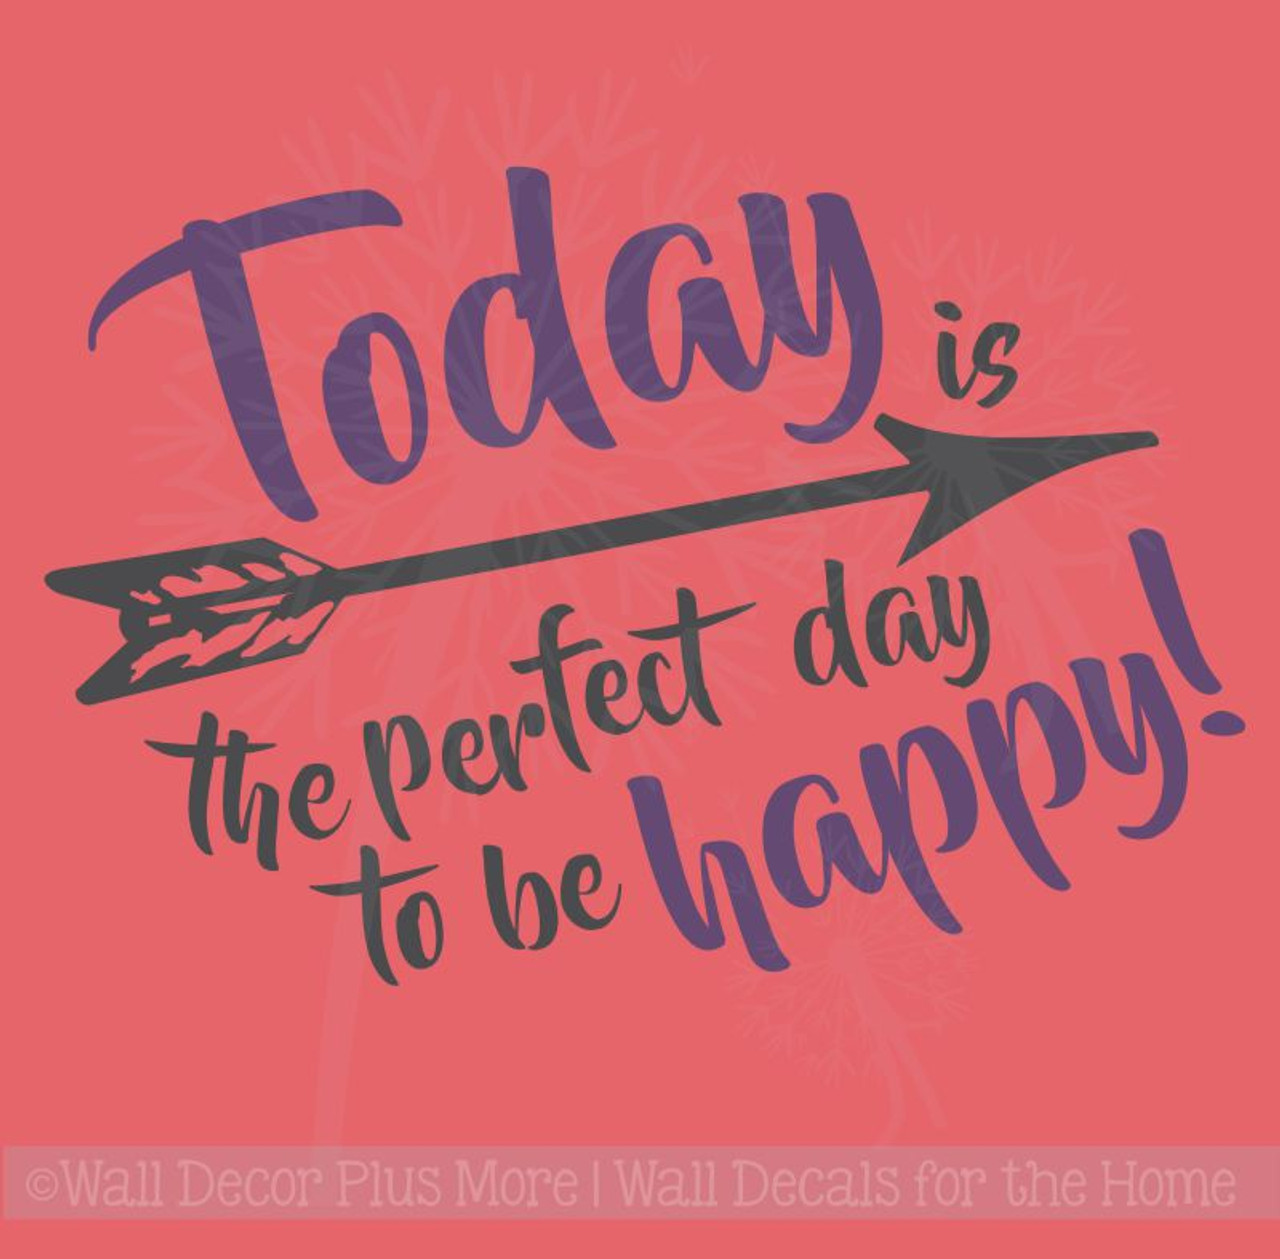 Today Perfect Day To Be Happy Vinyl Decals Wall Inspirational Quotes for  Decor